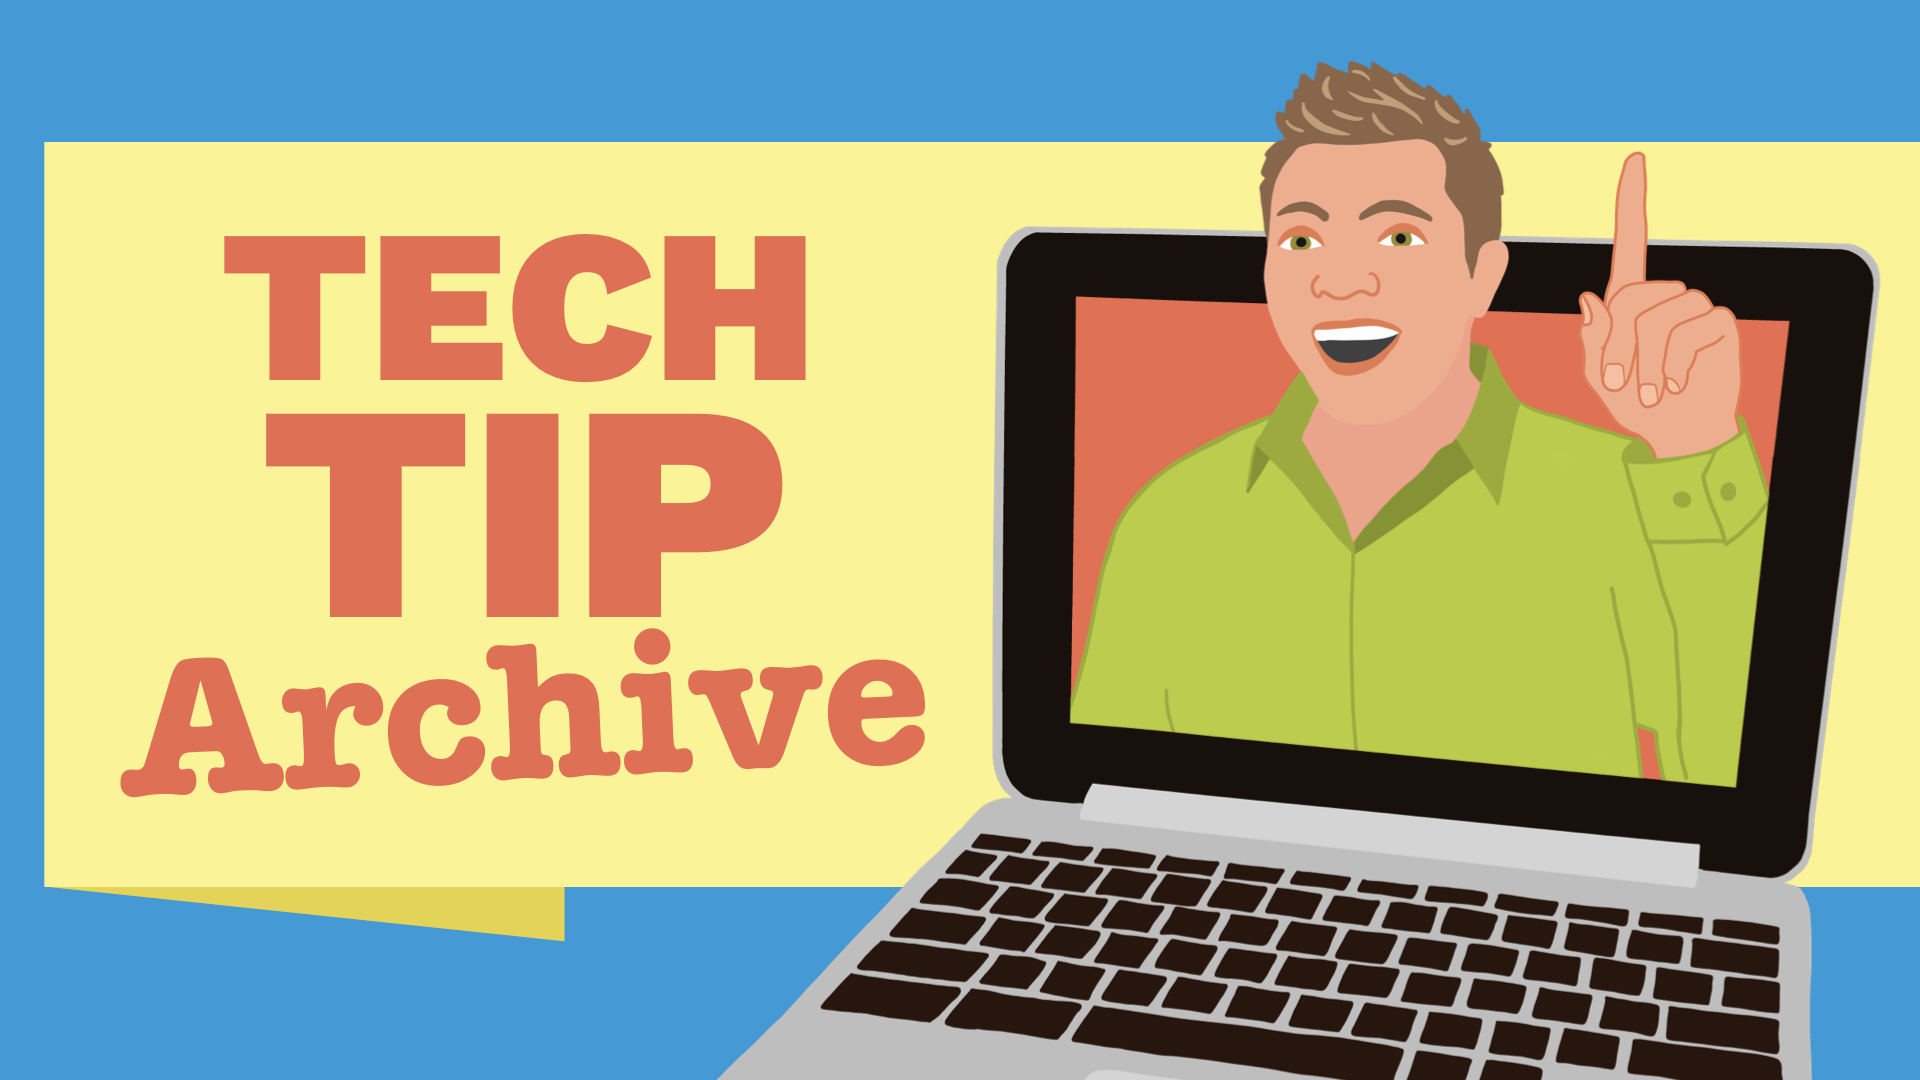 Tech Tip Archive with Cartoon Tony Vincent